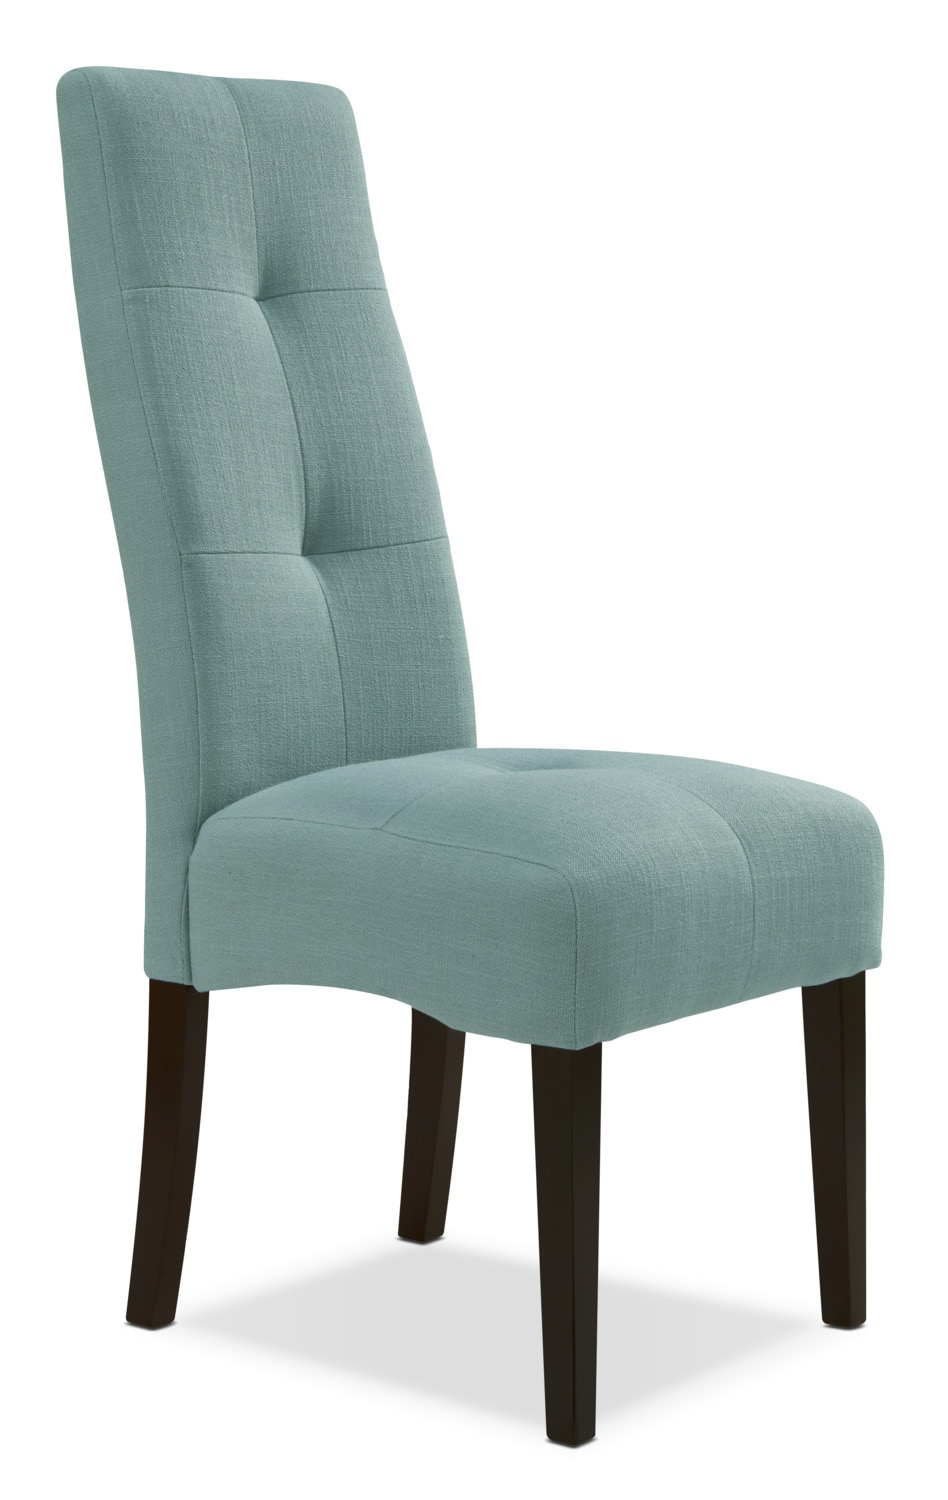 Dining Room Furniture - Sadie Dining Chair – Light Blue